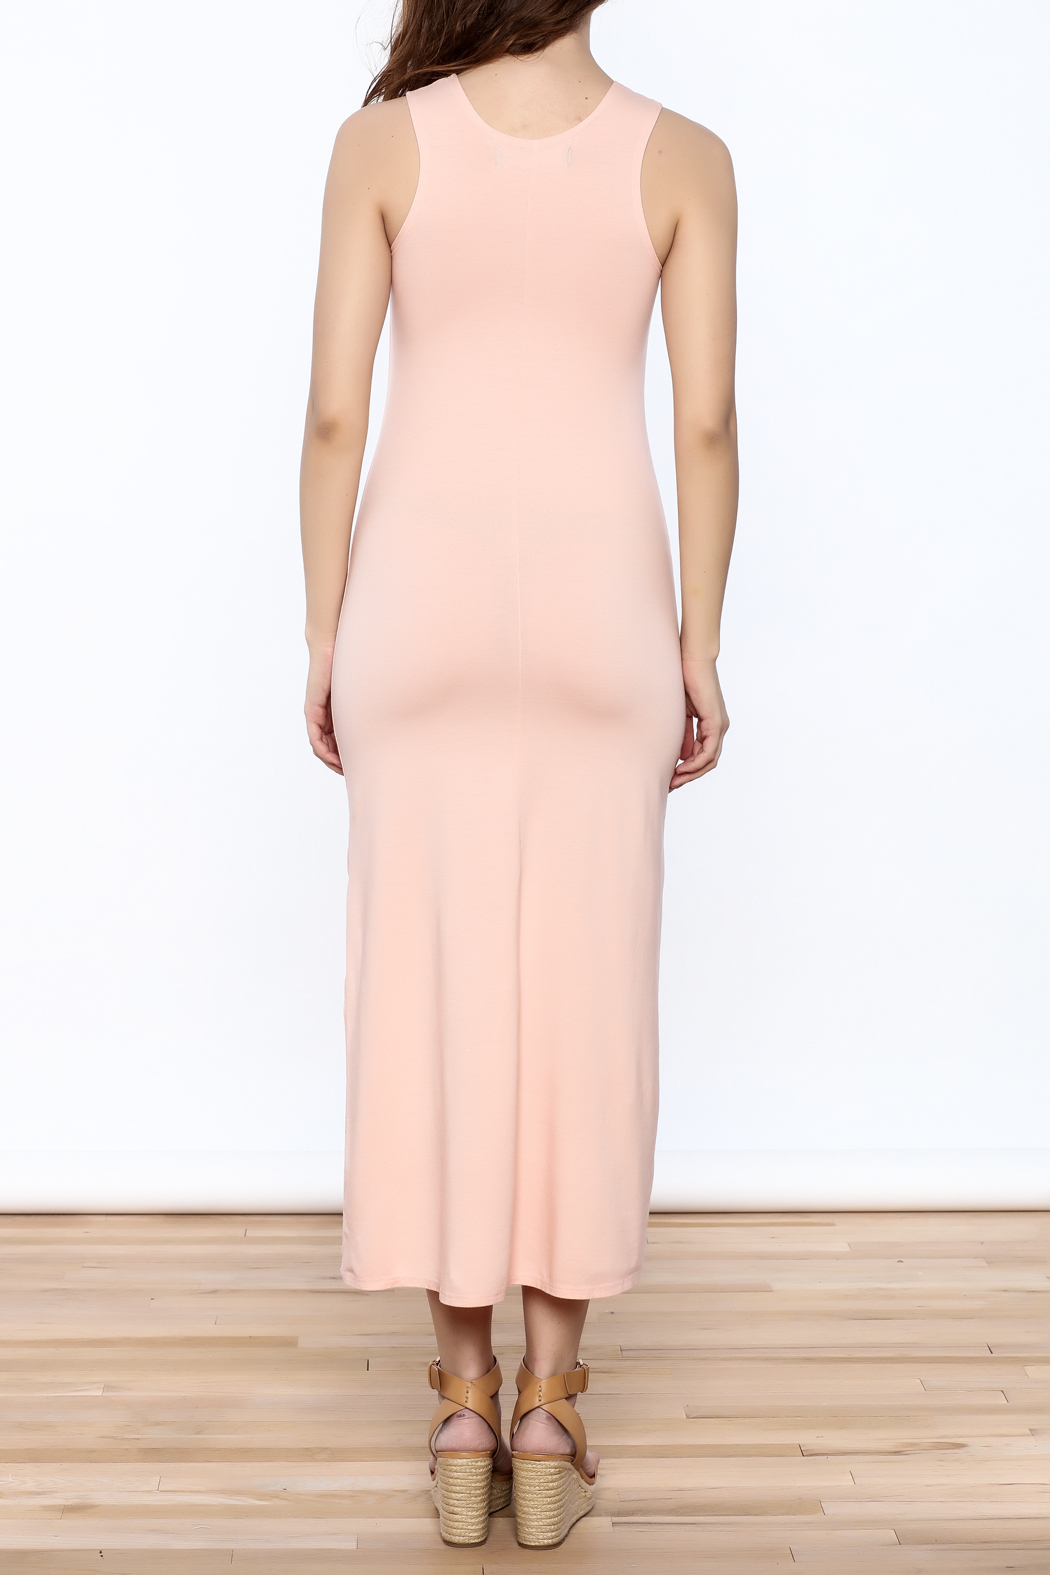 Groceries Apparel Powder Pink Maxi Dress - Back Cropped Image